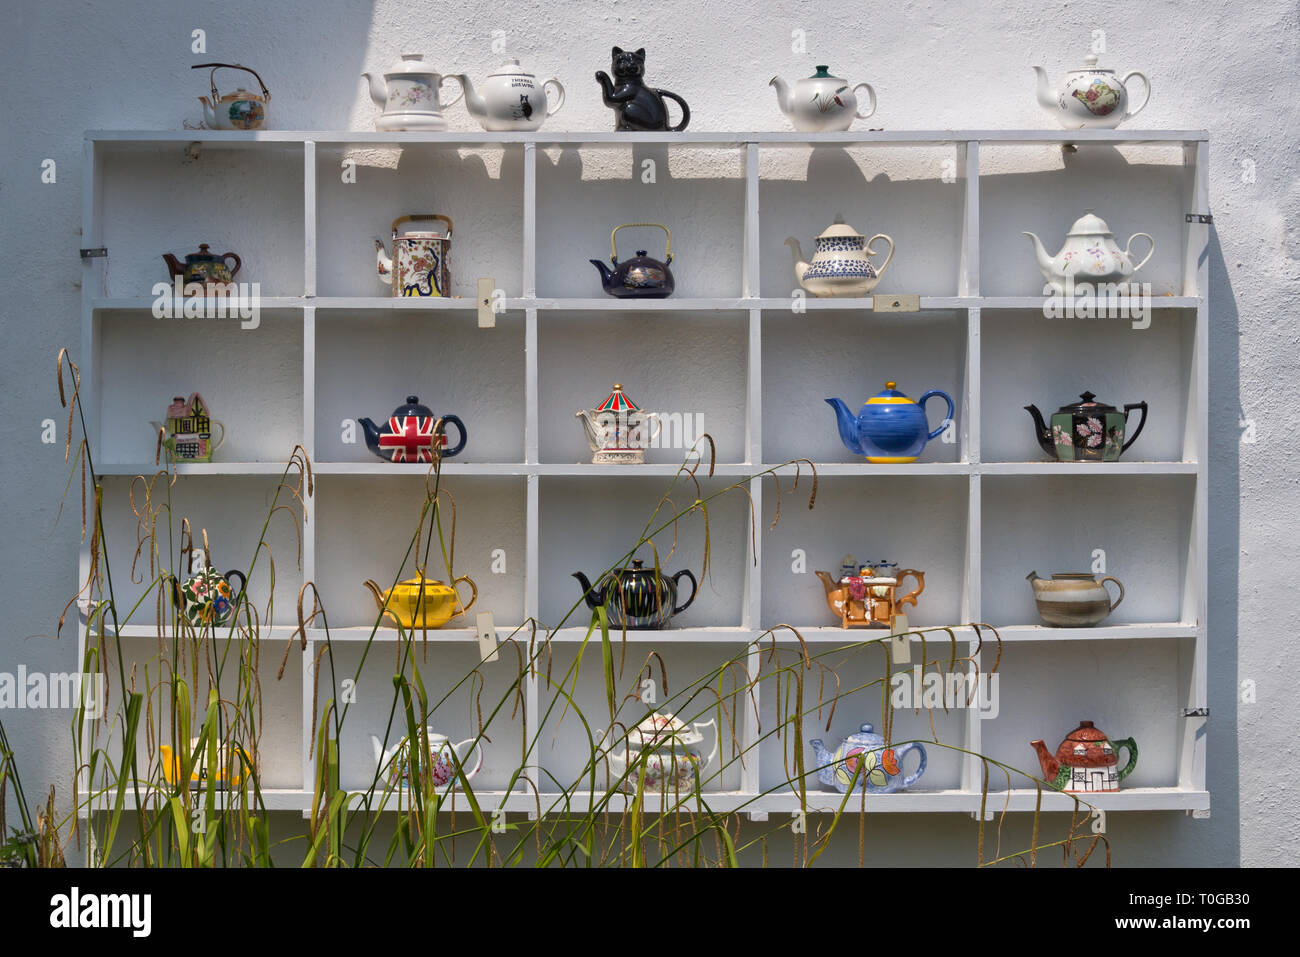 A collection of teapots on display outside a tea room on the Grand Western Canal in Tiverton, Devon, UK - Stock Image